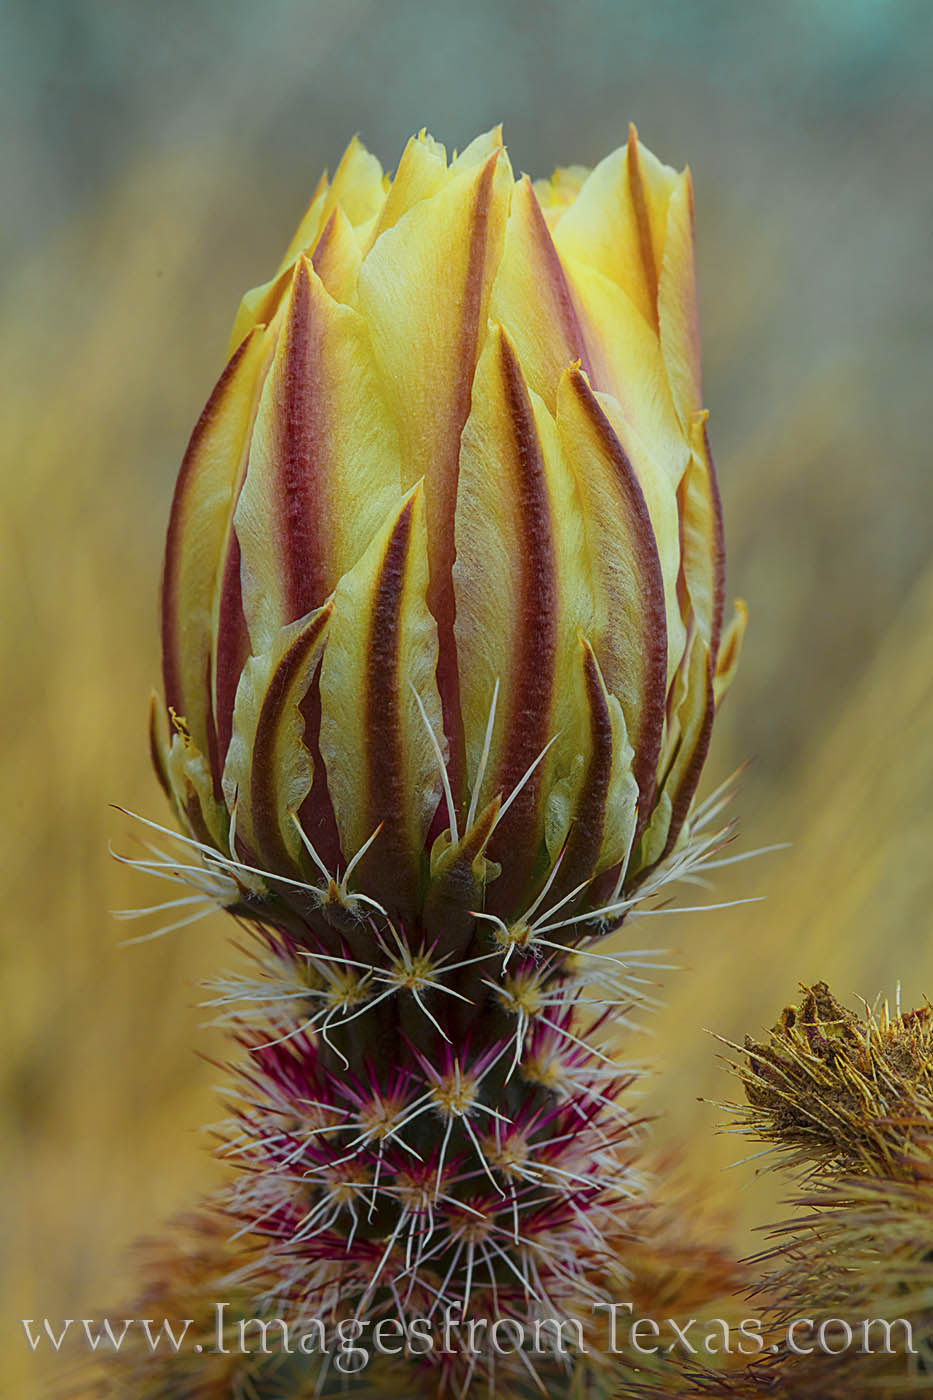 Echinocereus dasyacanthus, rainbow cactus, big bend ranch, chihuahuan desert, flowers, big bend flowers, cactus blooms, photo